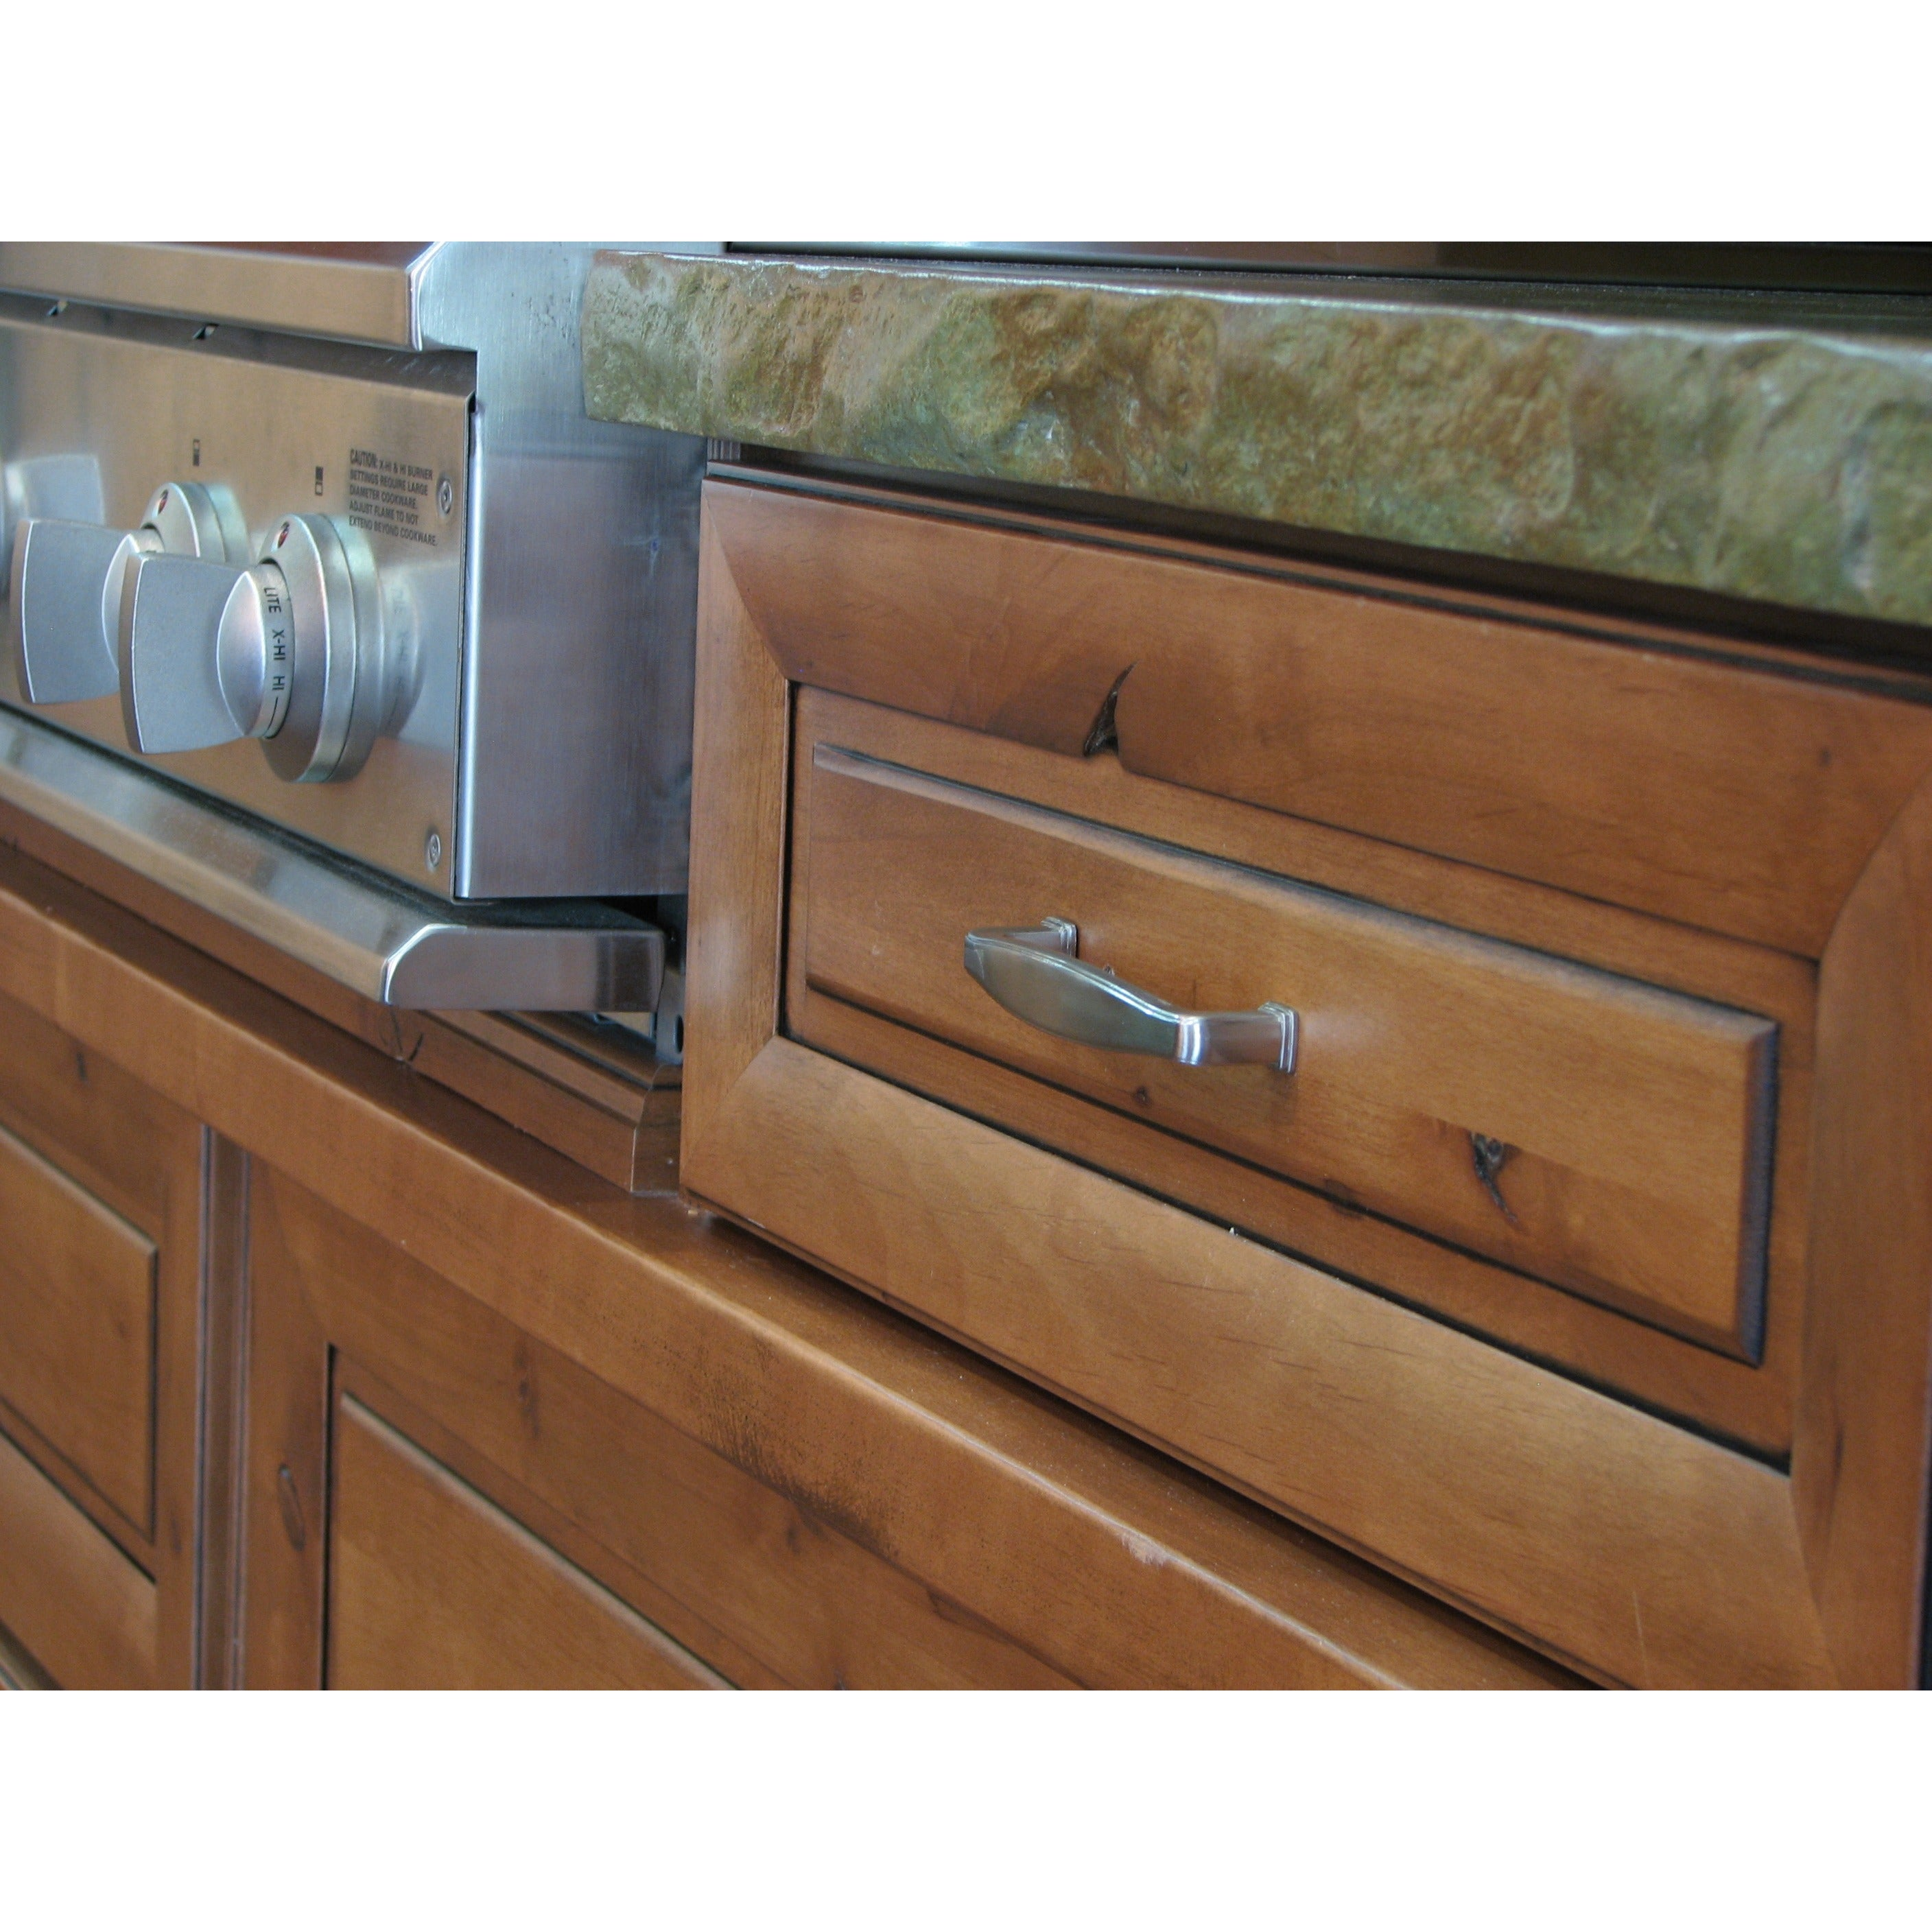 Shop Stone Mill Hardware \'Providence\' Satin Nickel Cabinet Pulls ...